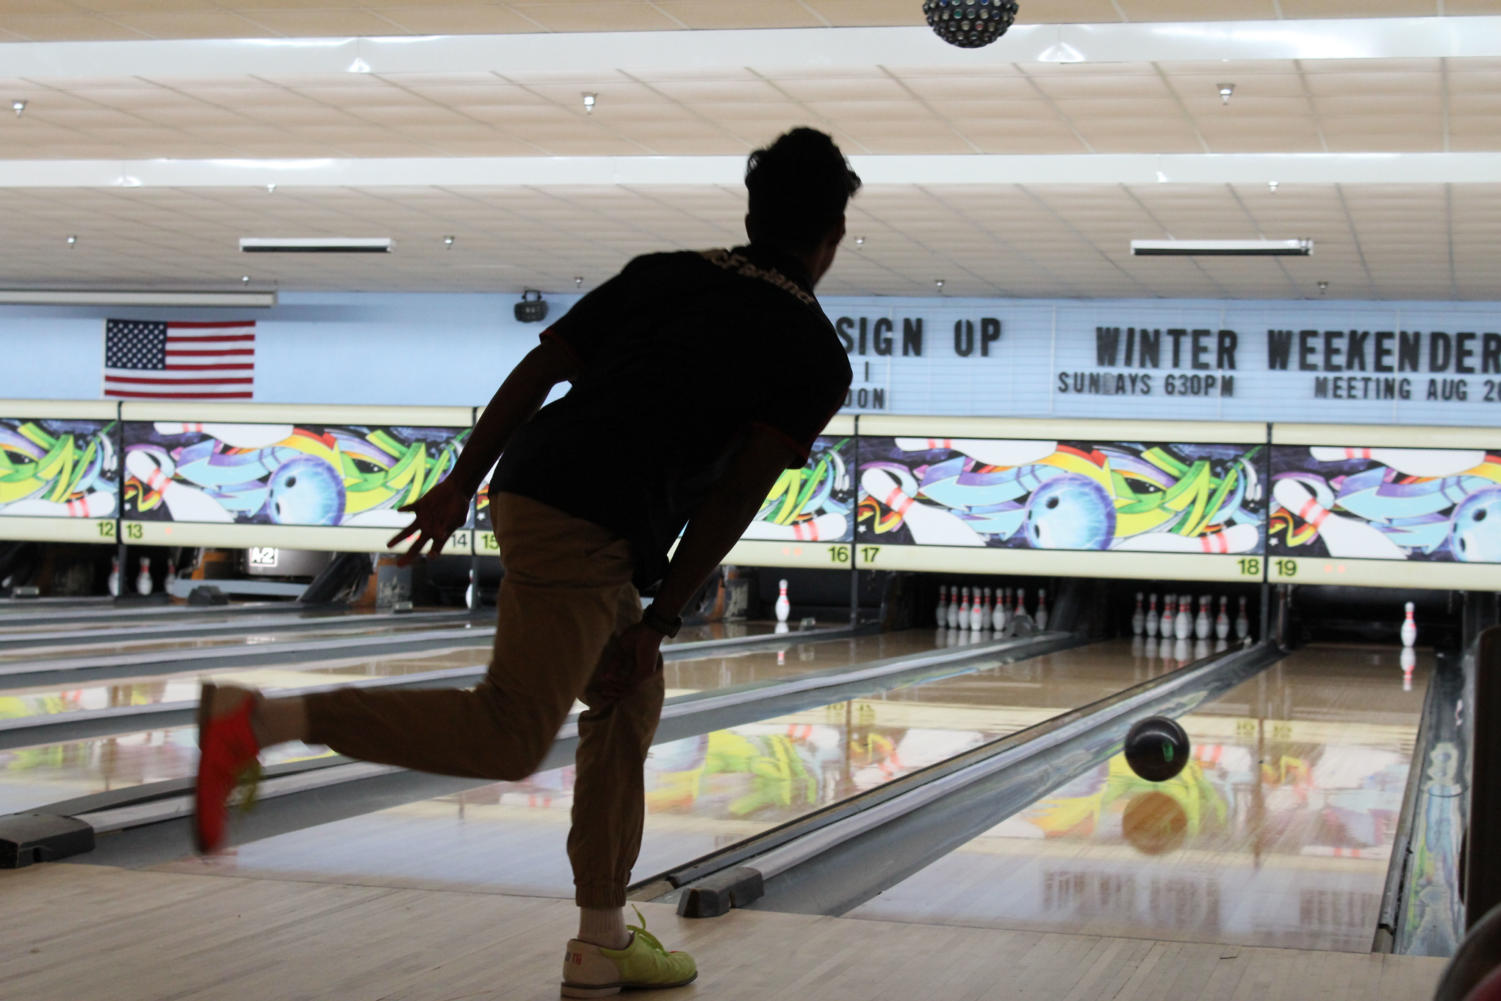 Senior+Josh+Singh+watches+the+ball+roll+down+the+lane%2C+at+Oviedo+Lanes+on+Monday%2C+August+27%2C+after+he+lets+go.+Many+teams+shout+out+chants+to+keep+their+bowlers+energized.